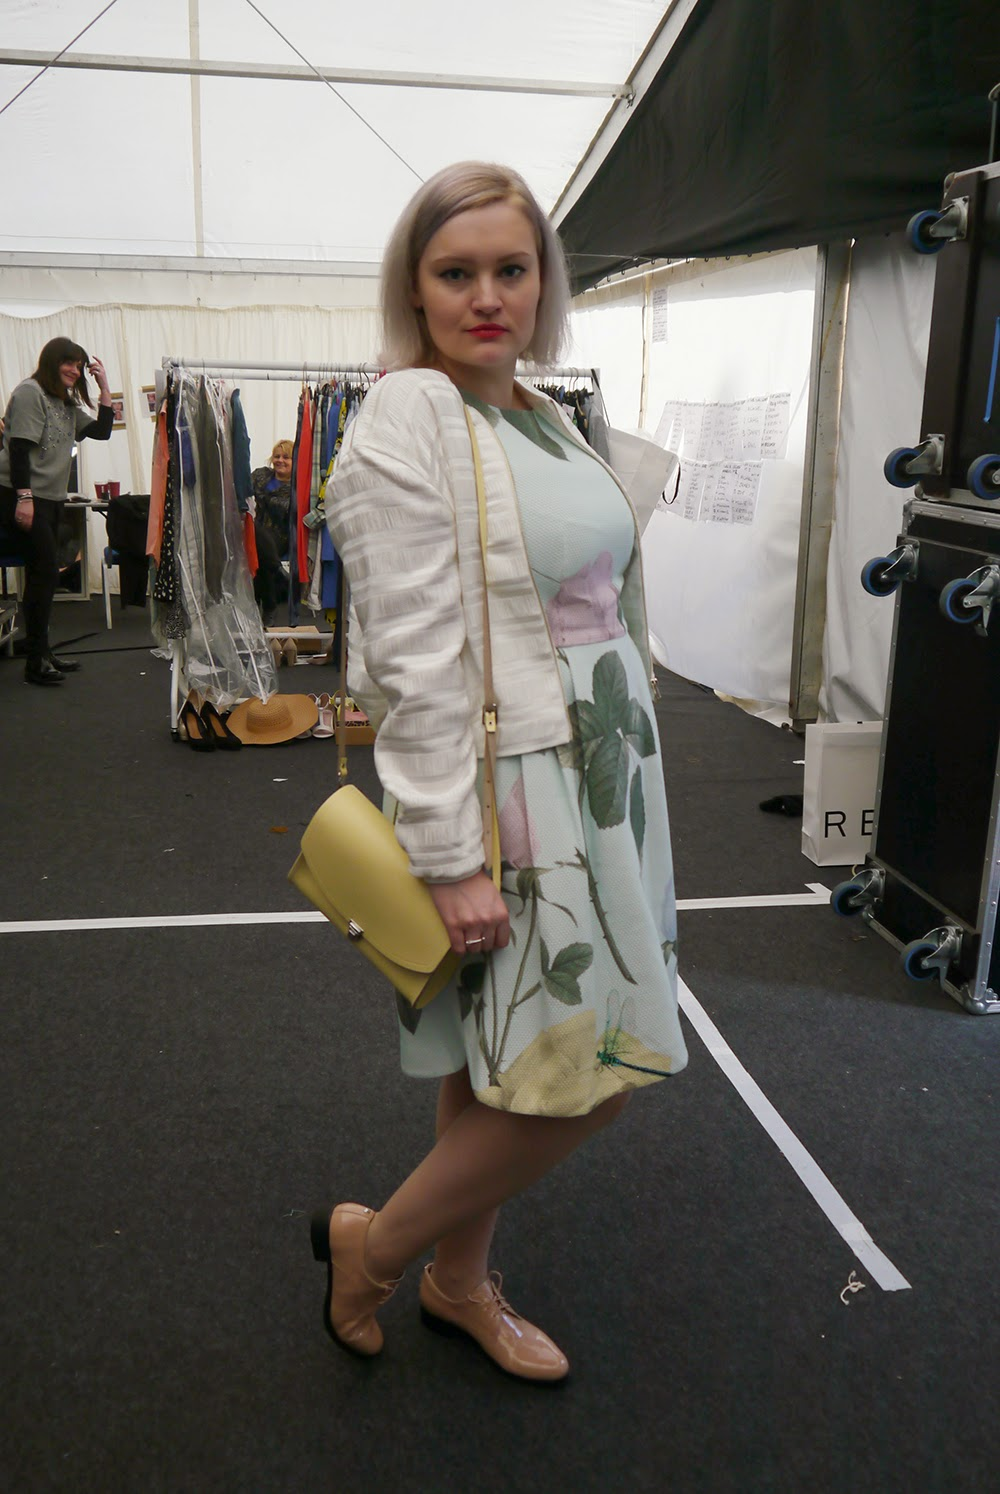 Edinburgh Fashion Week, Scottish Bloggers, #EdFashionWeek, Edinburgh, Scottish Fashion, Florals, Satisfashion, The Cambridge Satchel Company, H&M, backstage, fashion show, trends s/s 15